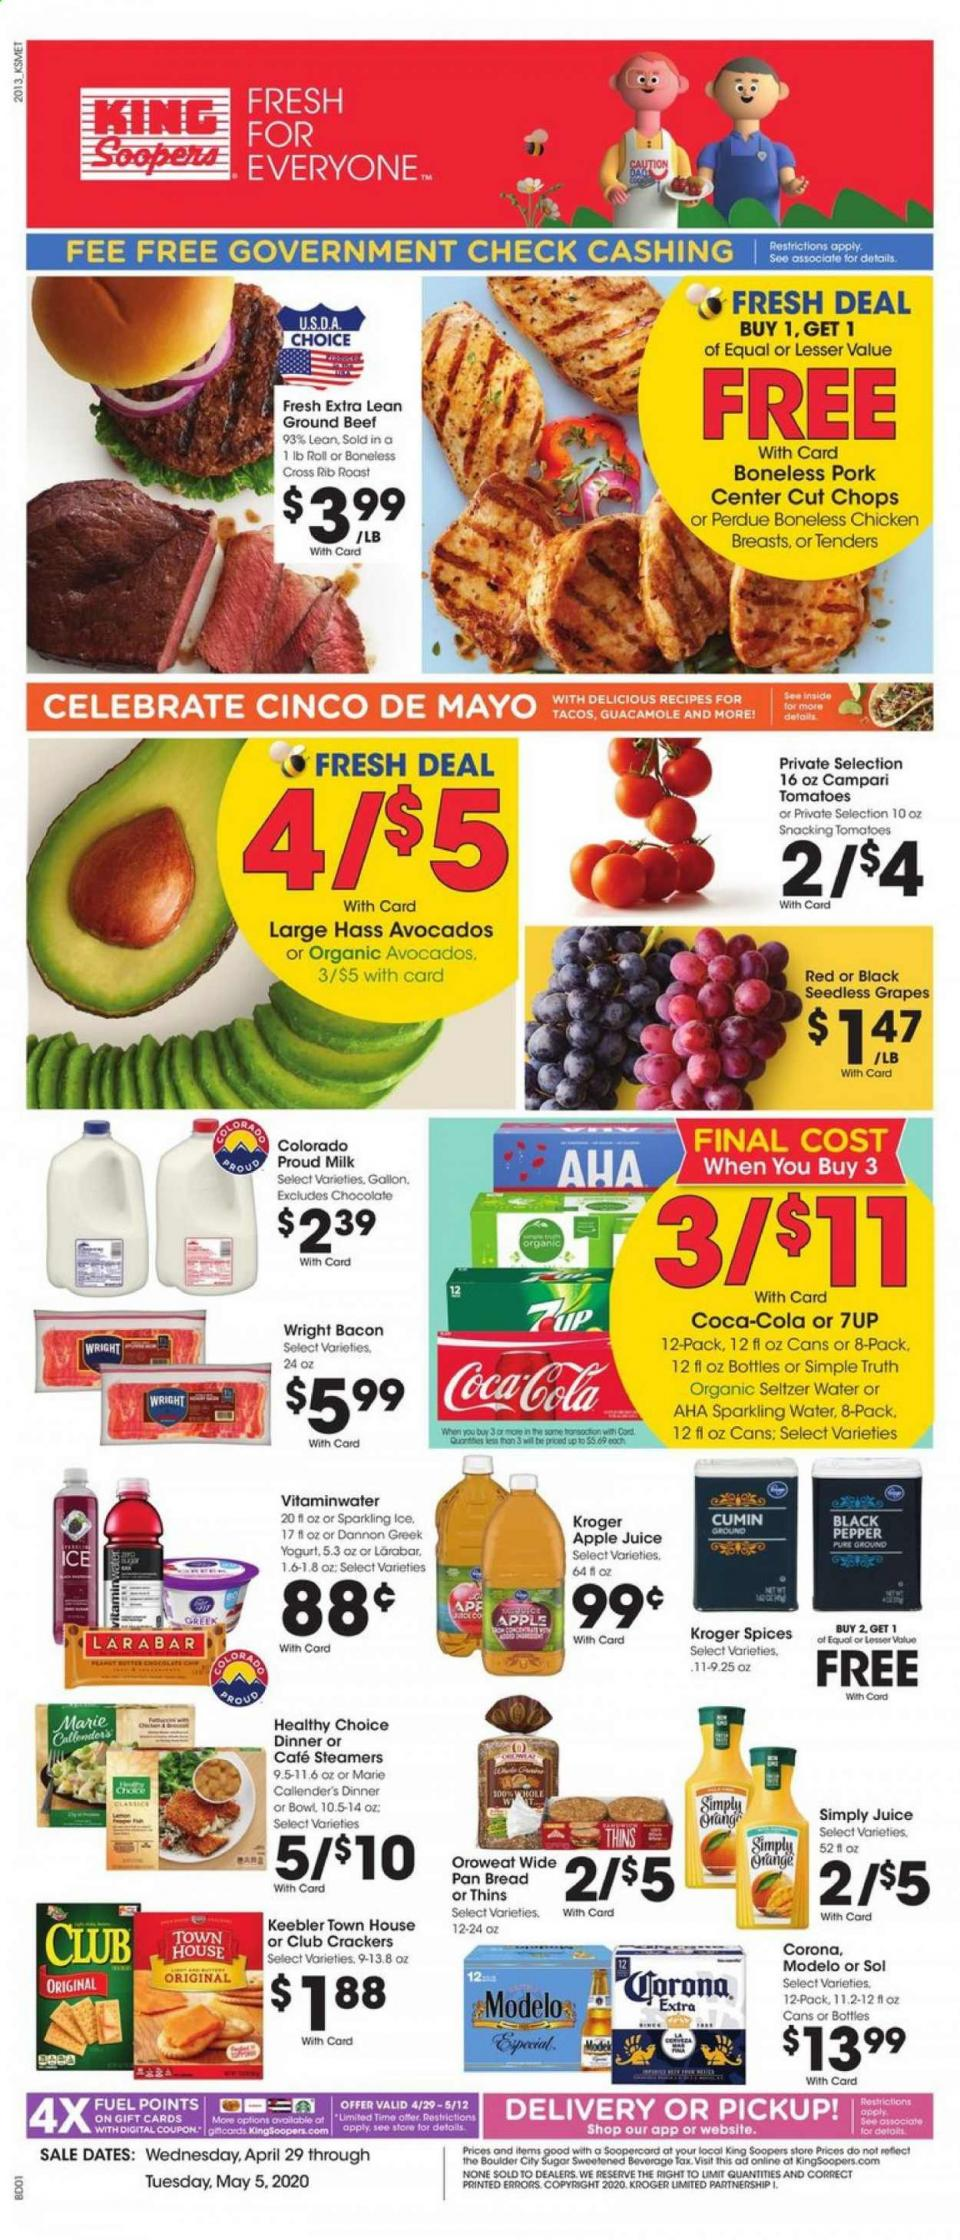 king soopers ad apr 29 may 5 2020